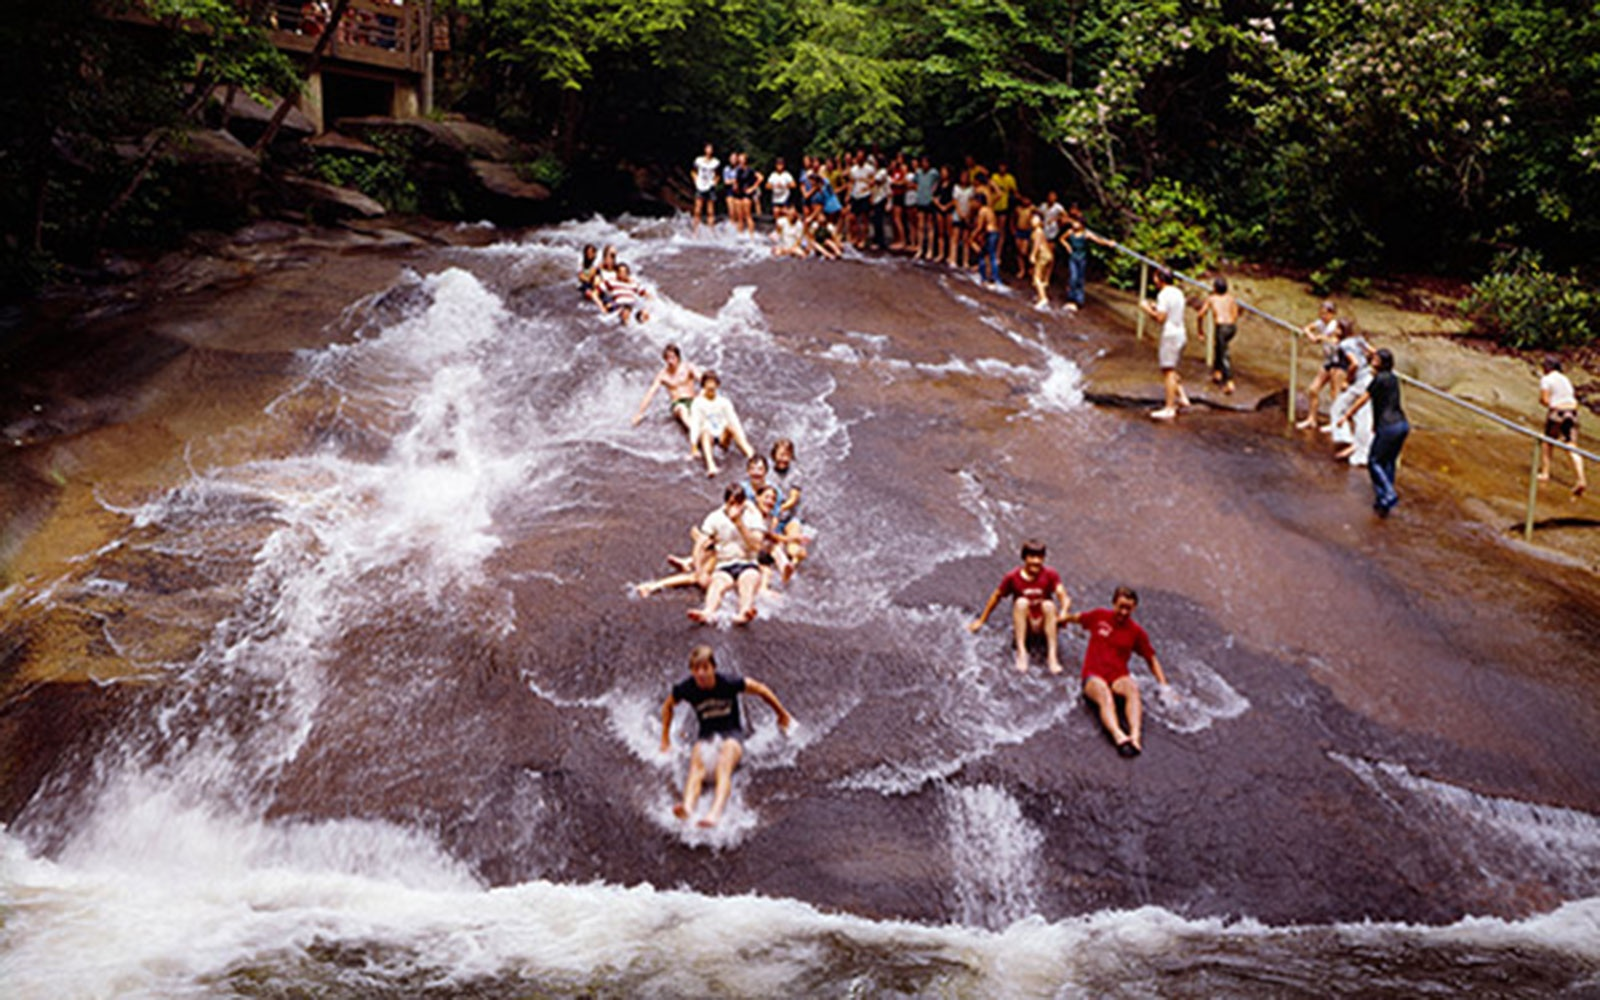 pool swimmers sliding down Sliding Rock in Brevard, NC